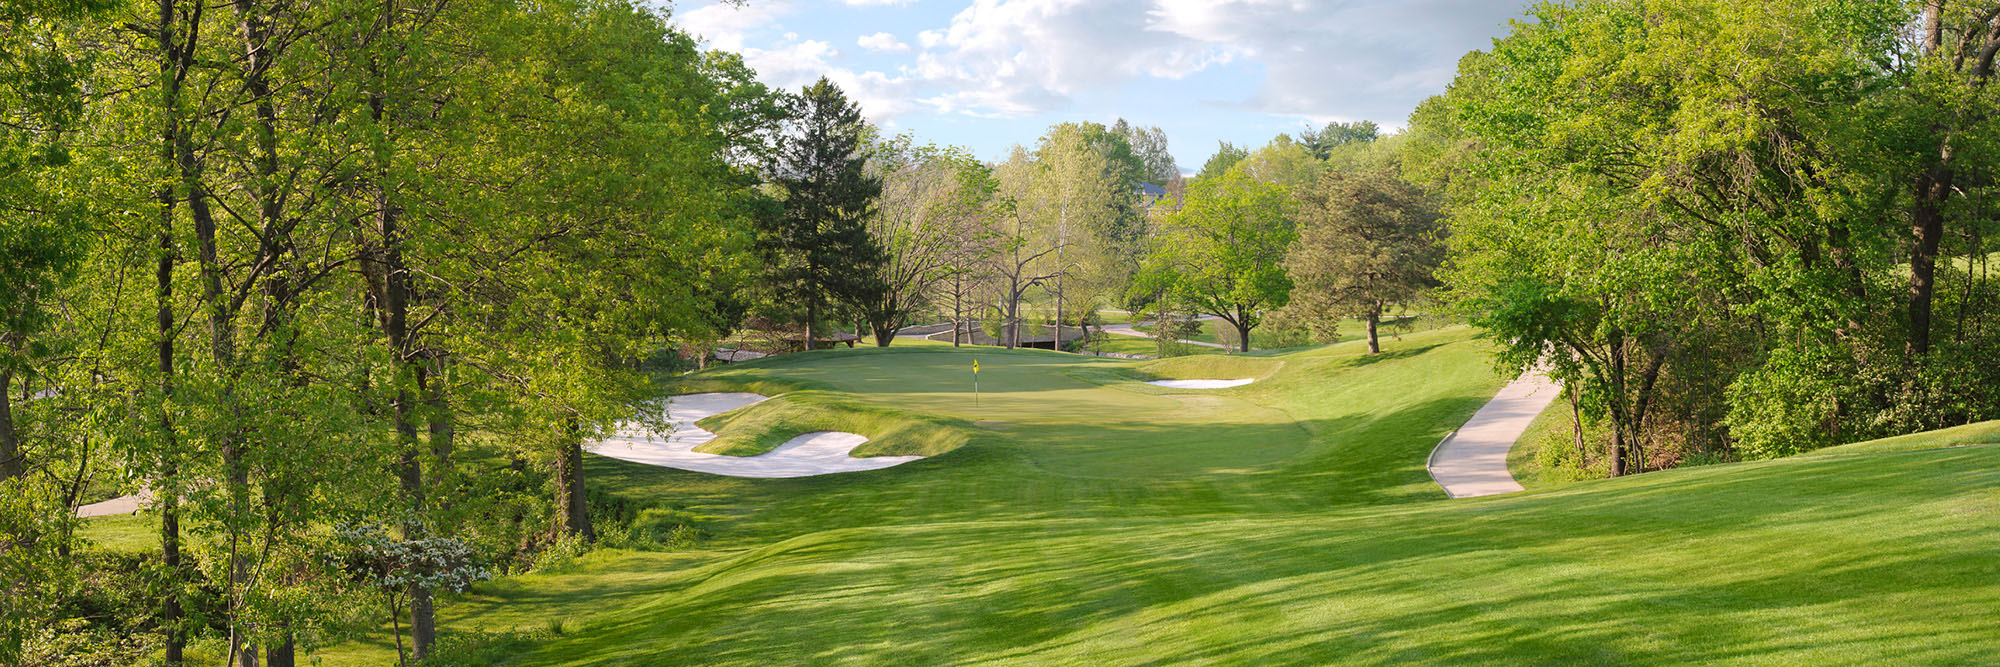 Golf Course Image - Forest Hills Country Club No. 4